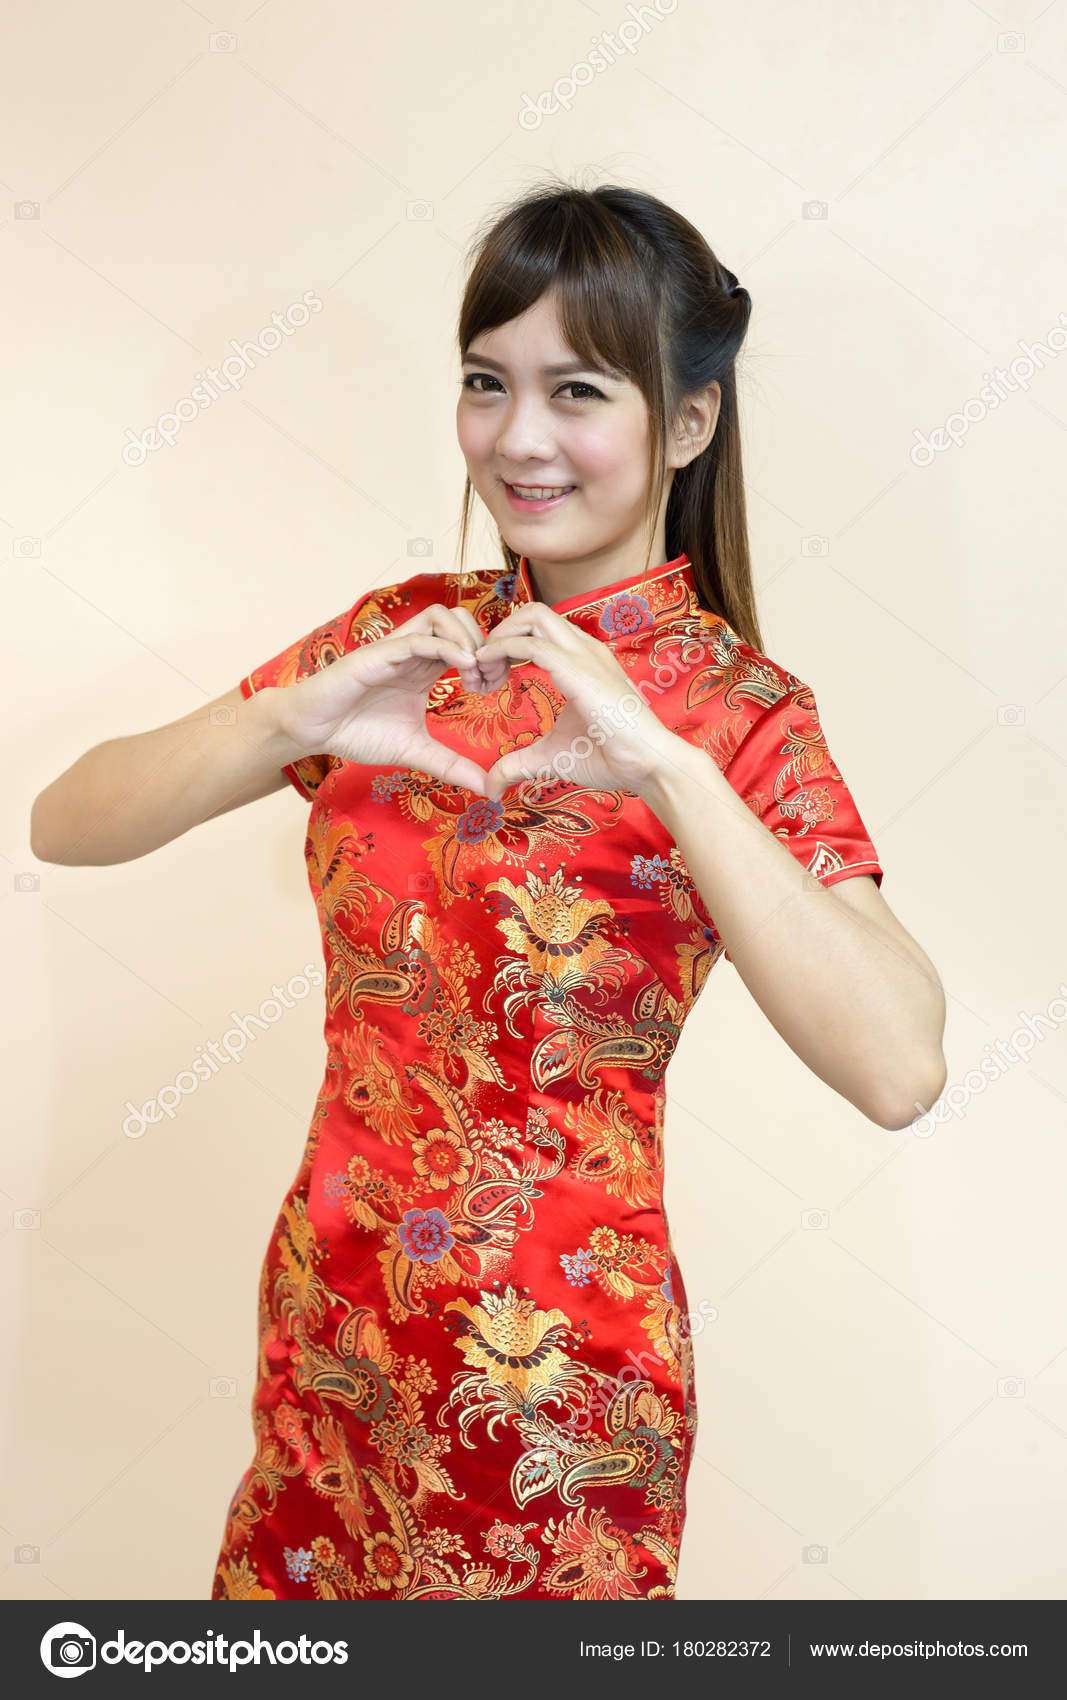 Asian woman greeting traditional chinese cheongsam hand lift welcome asian woman greeting in traditional chinese or cheongsam with hand lift welcome expression and hand is a heart symbol sent love in chinese new year m4hsunfo